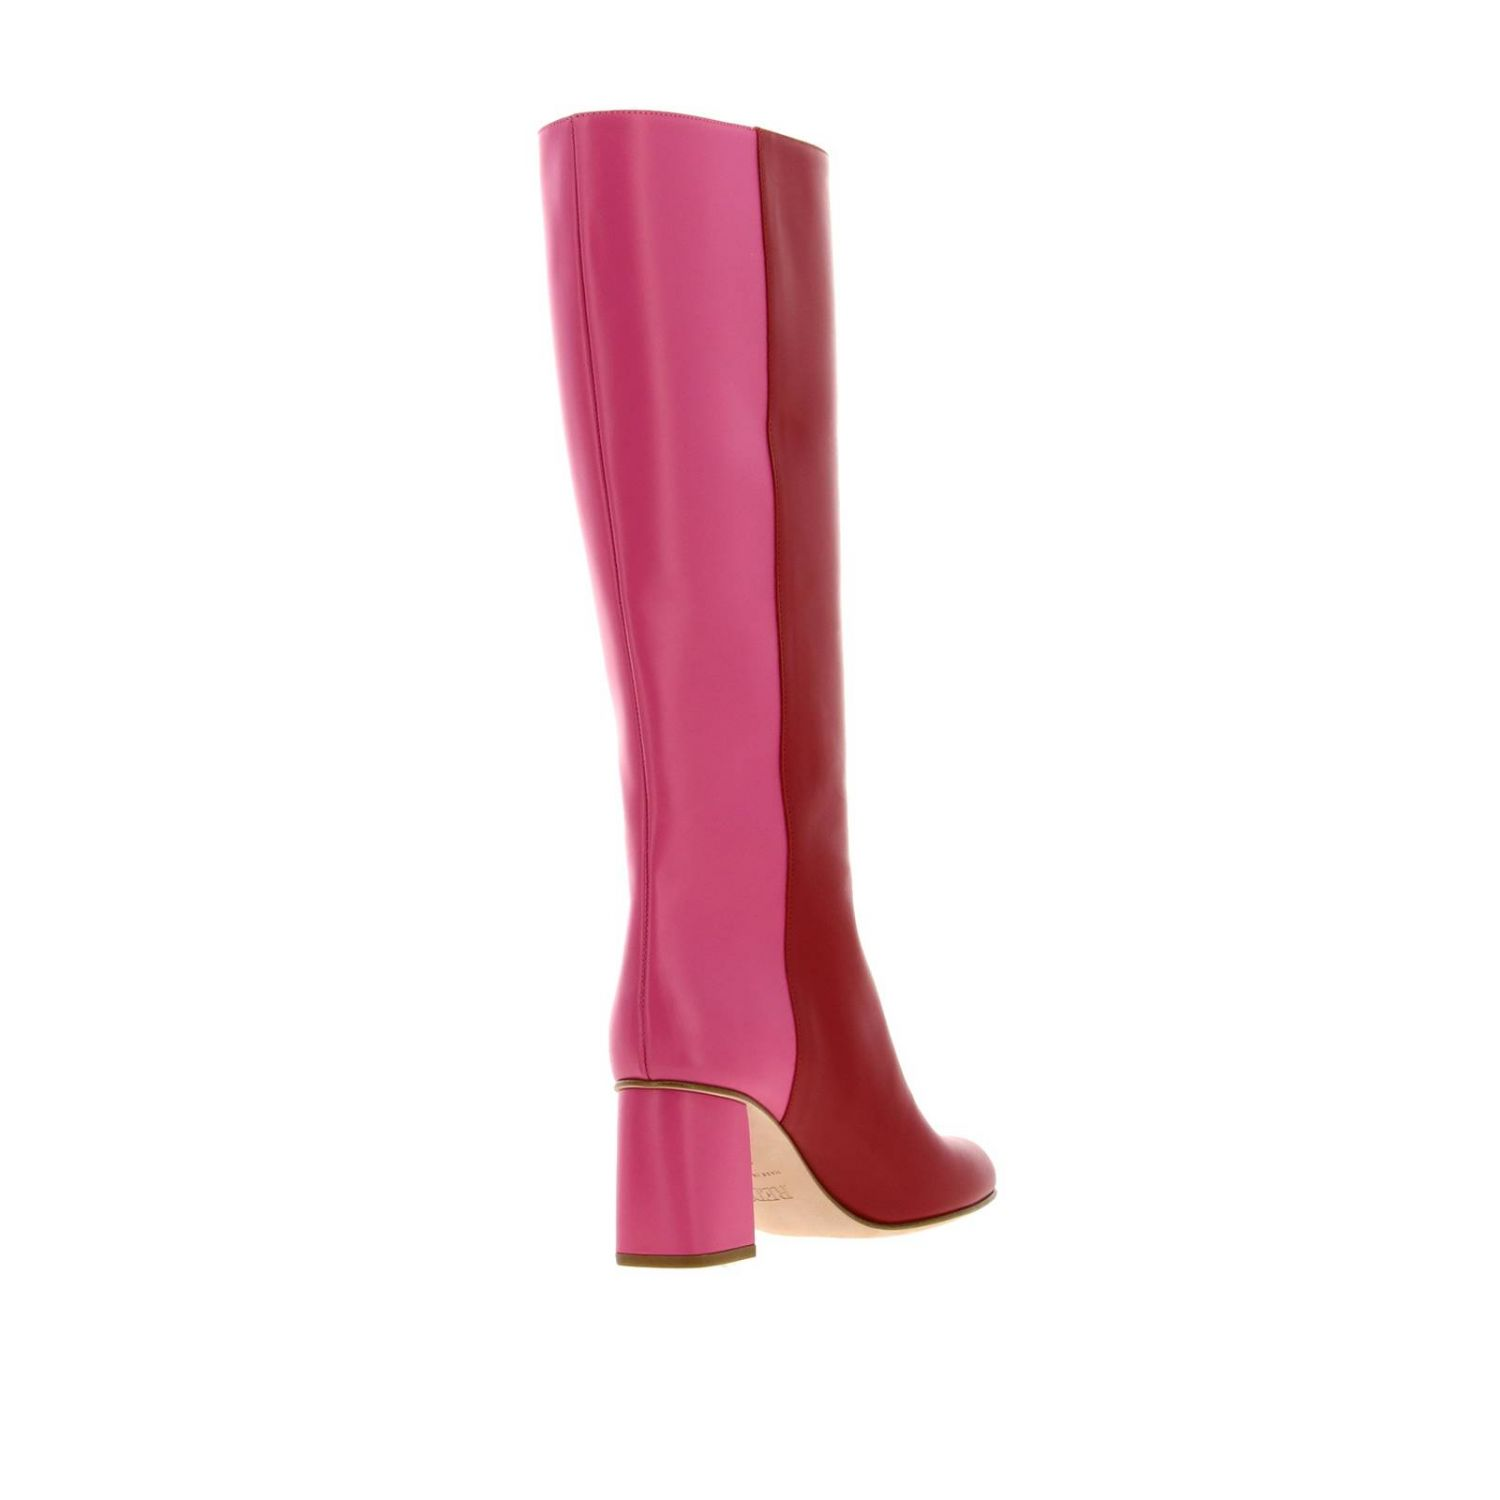 Boots women Red(v) red 4